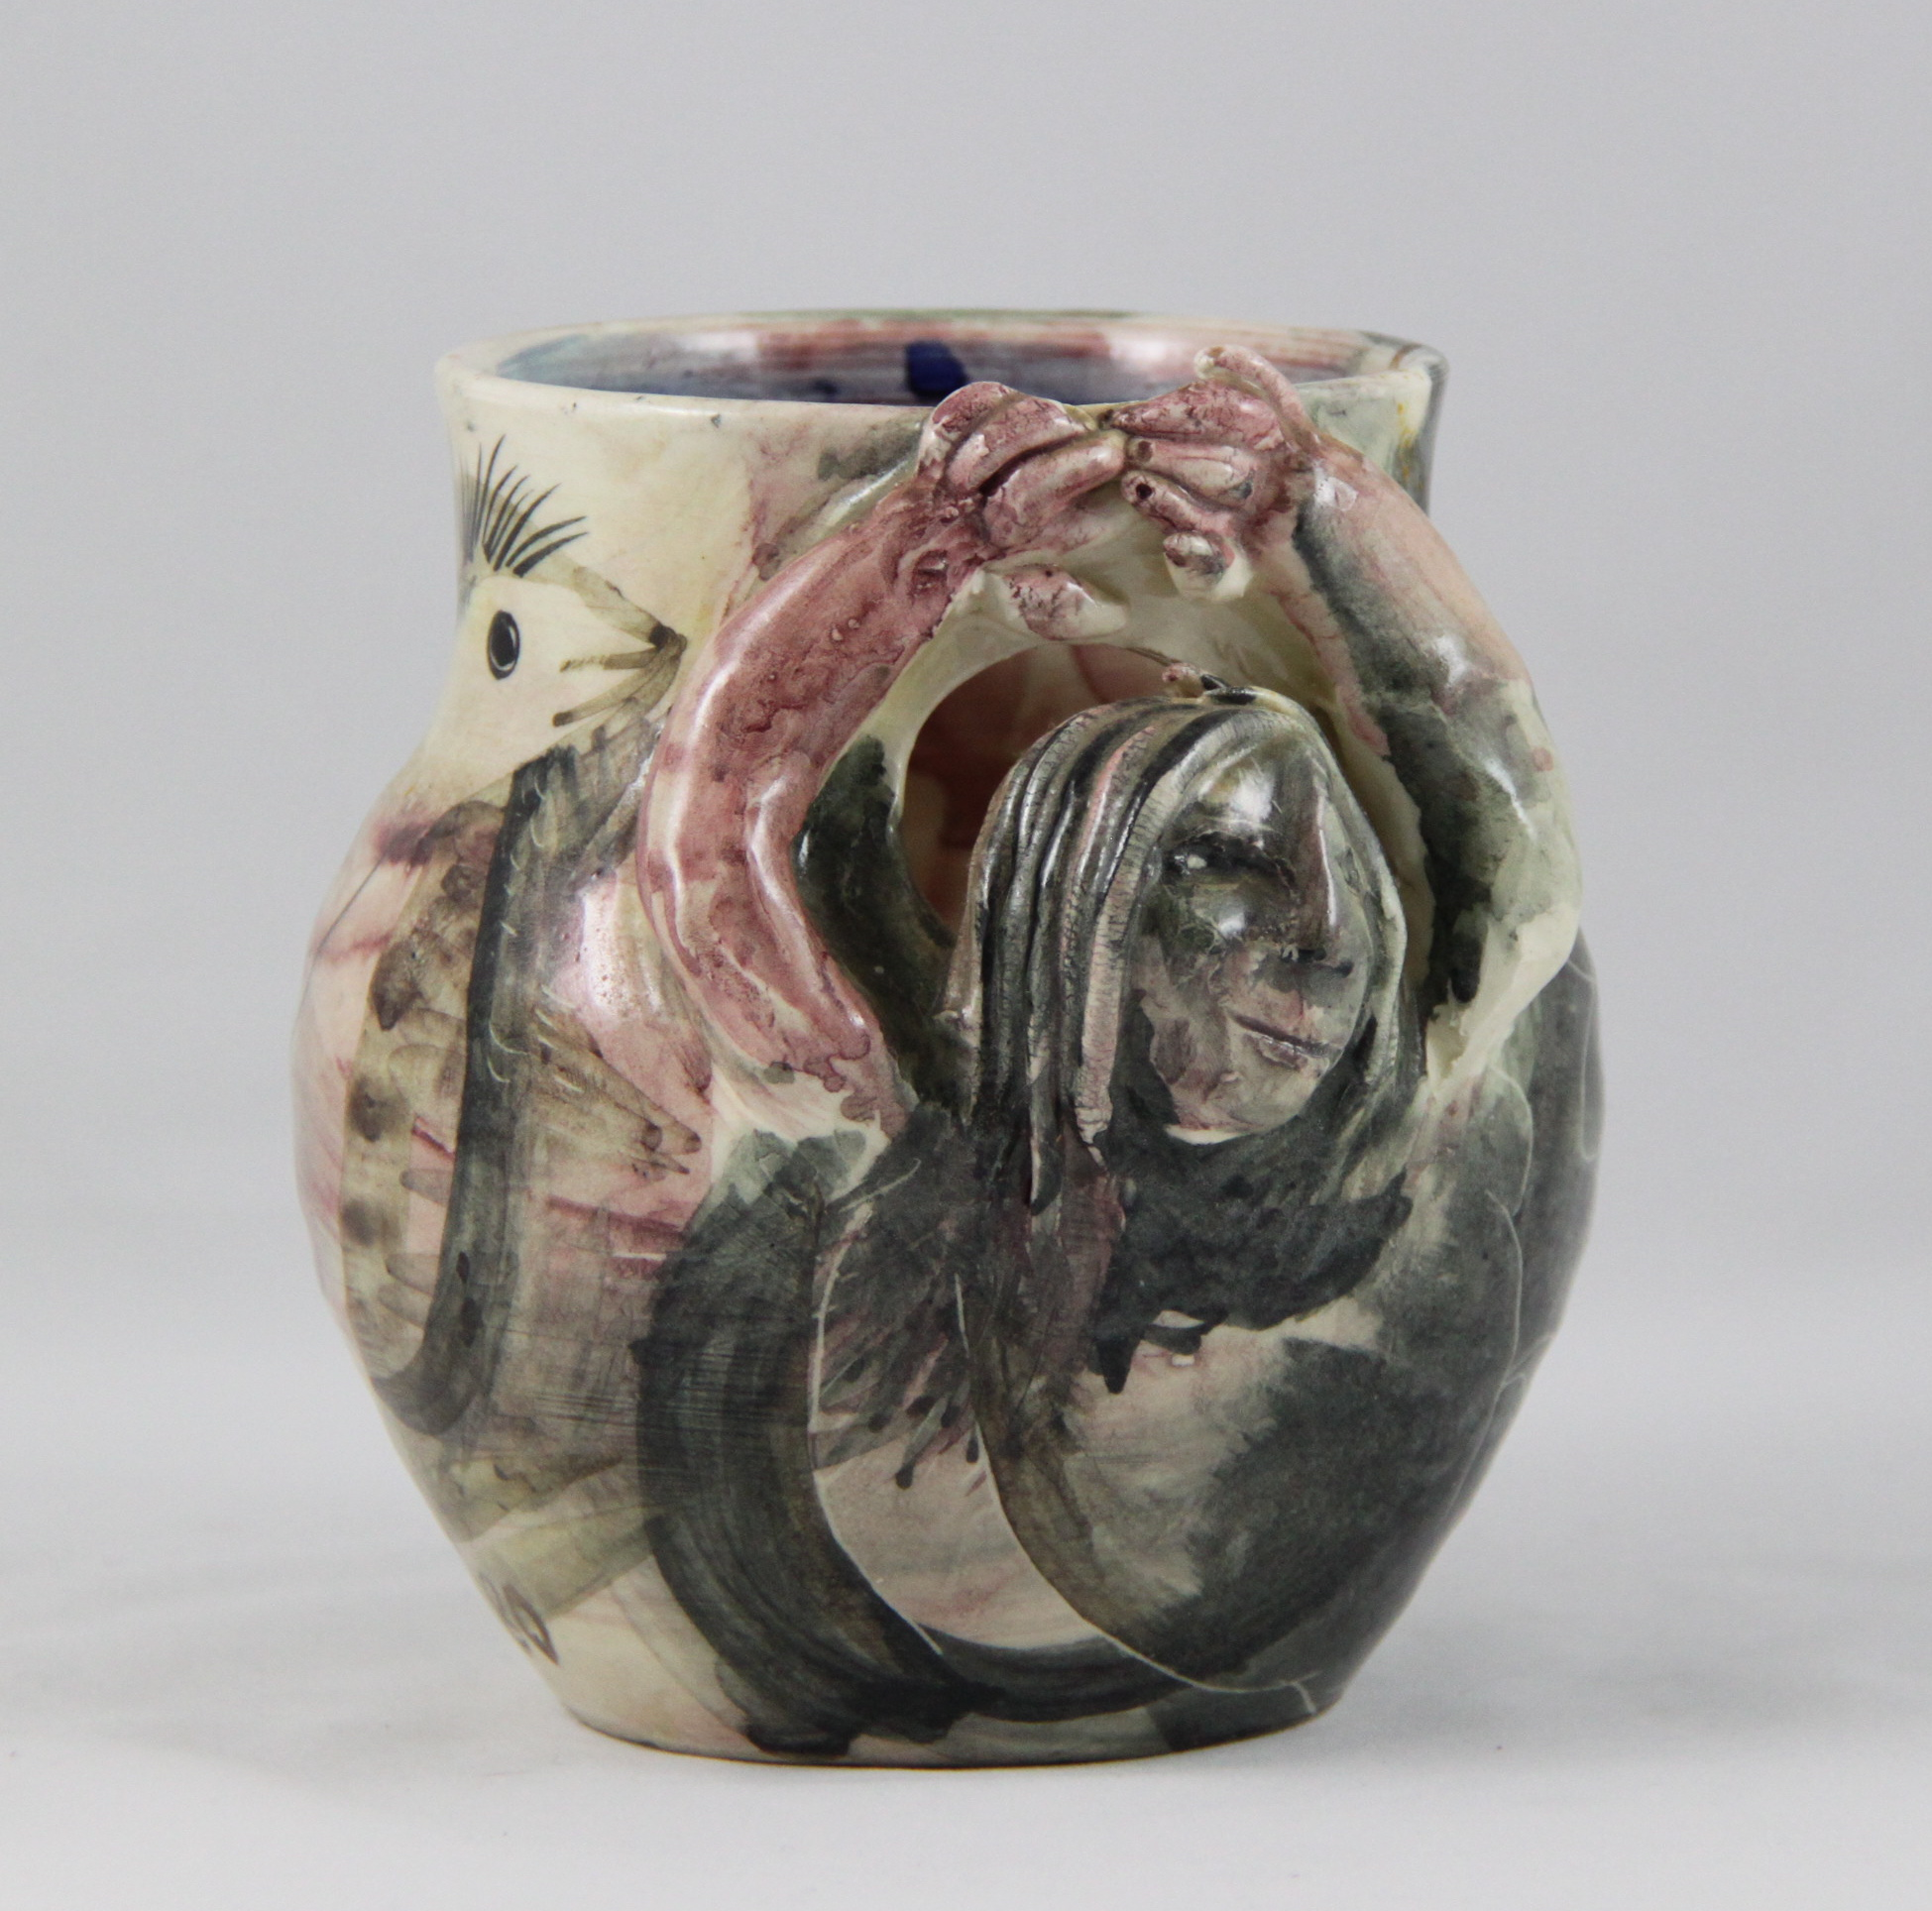 Anne Hall – SCULPTURED POT 1980